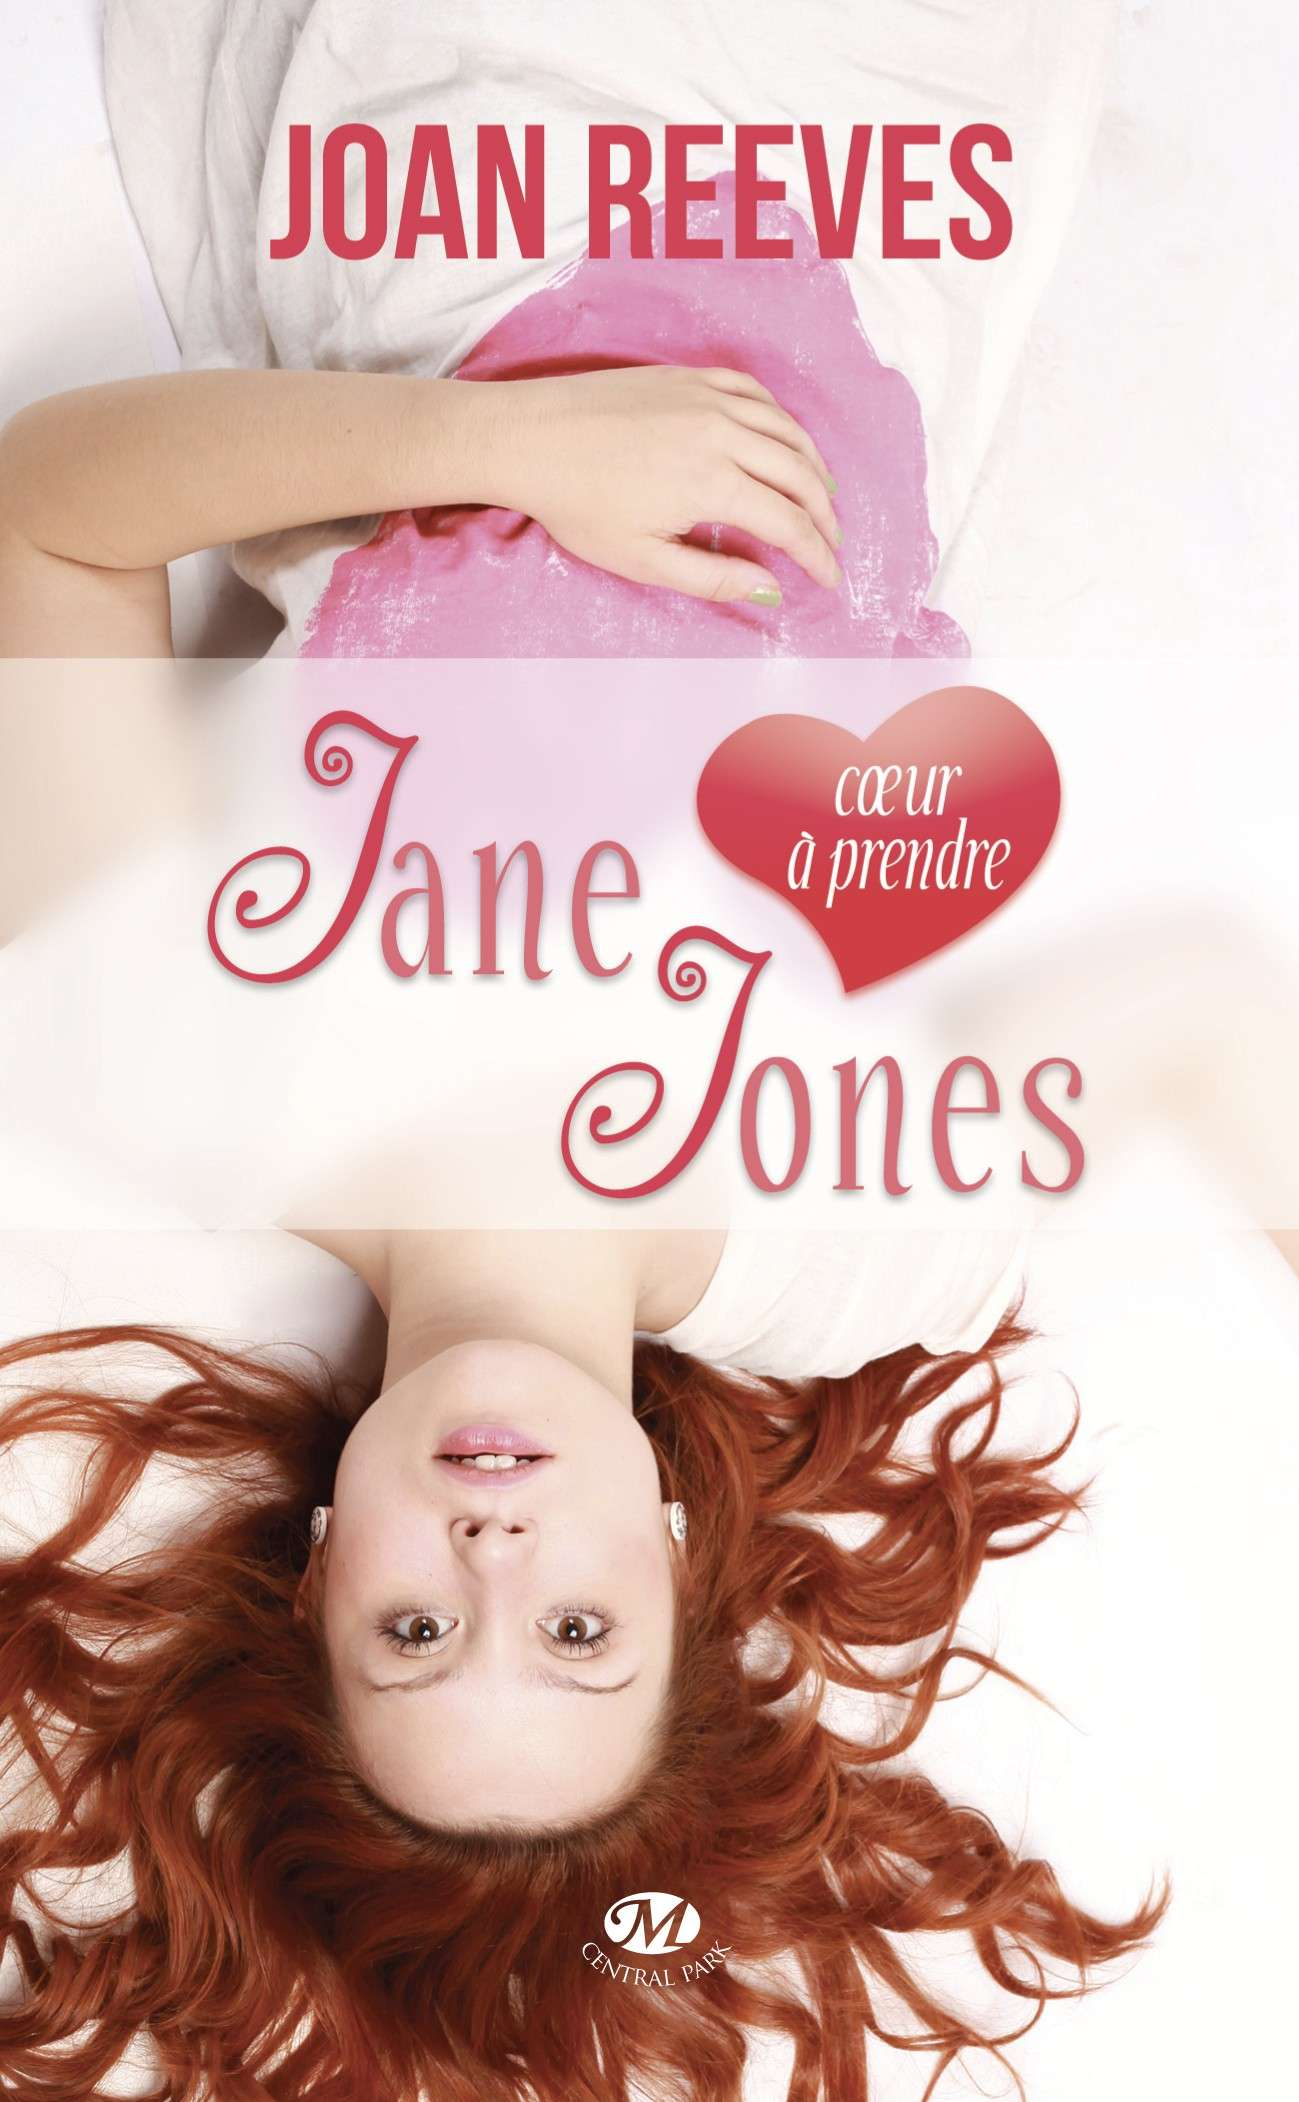 Jane (coeur à prendre) Jones de Joan Reeves Ccp_ja10